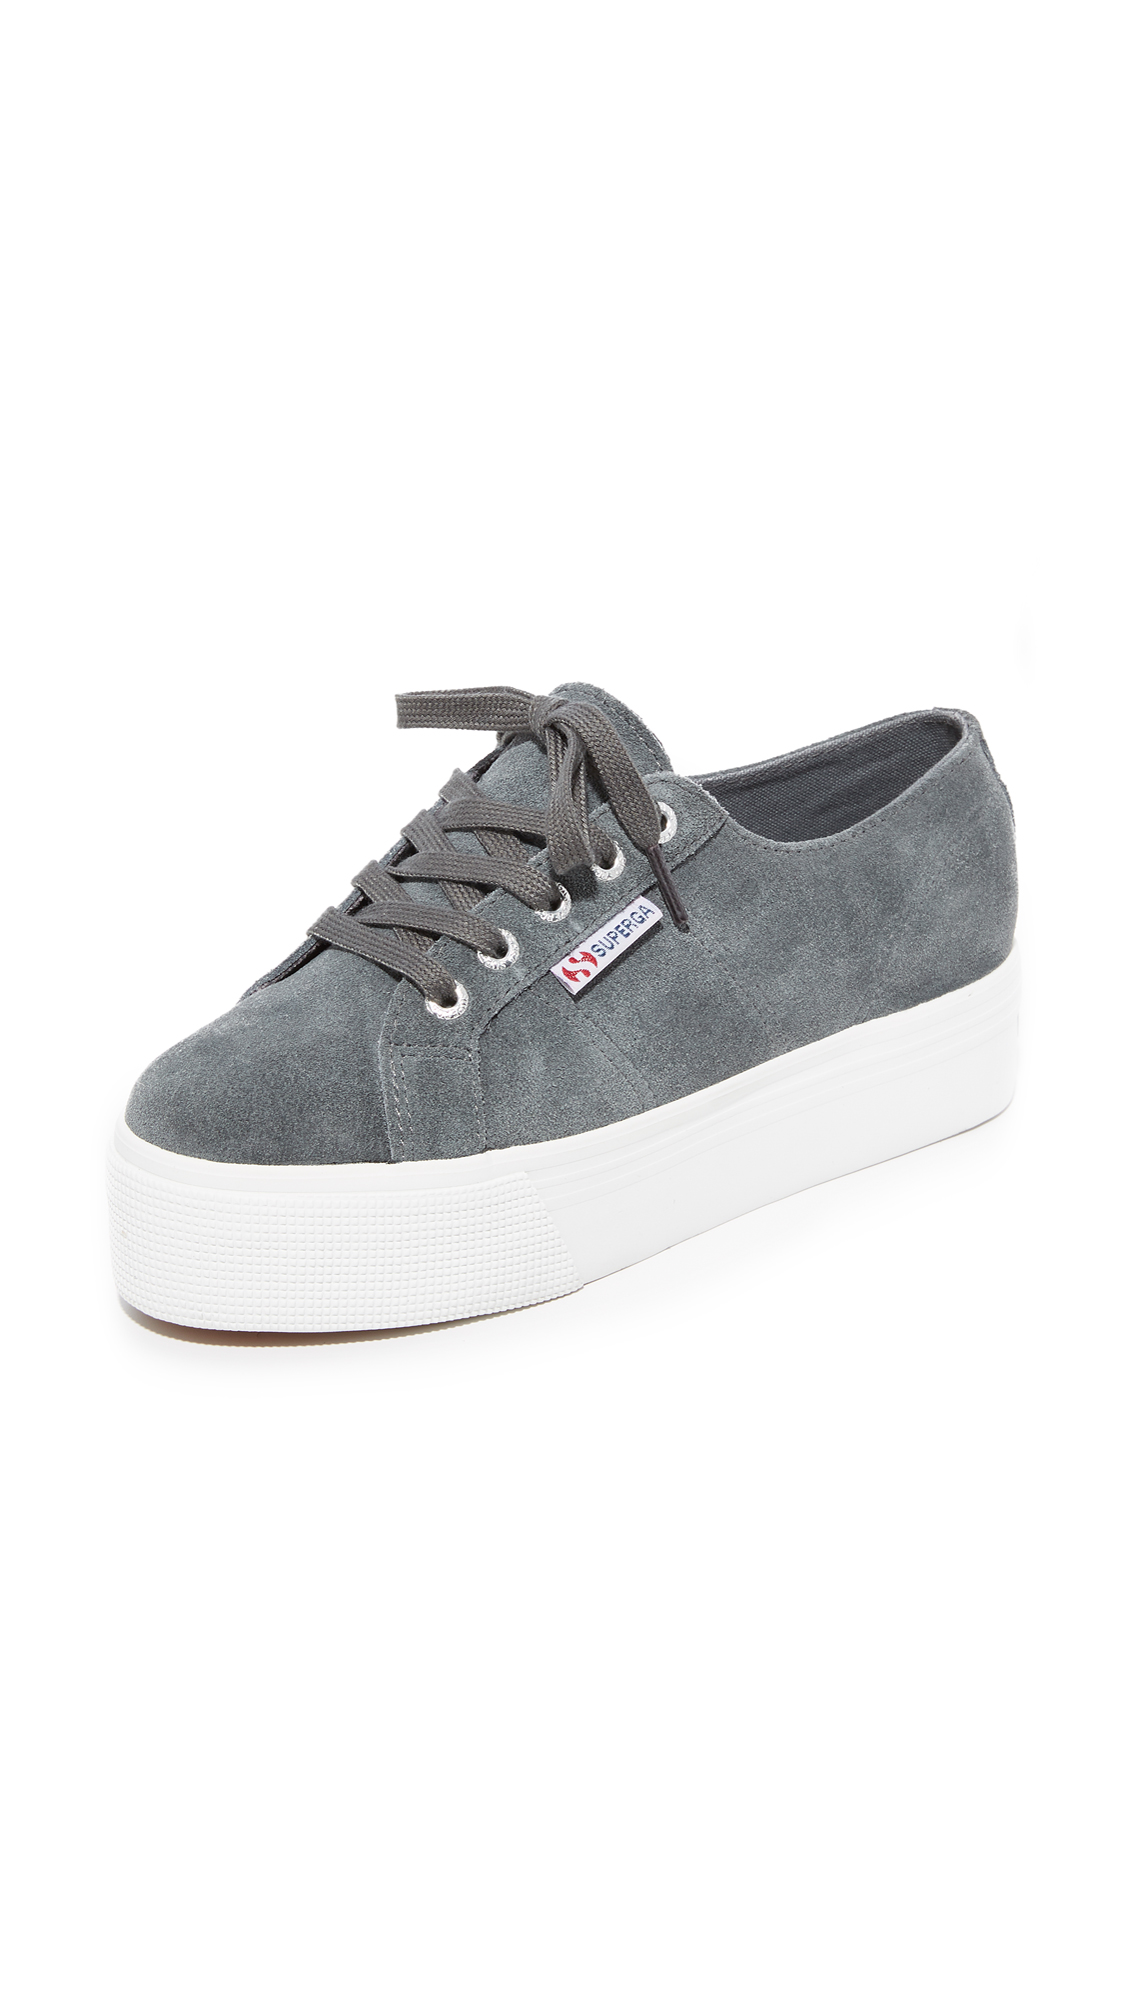 Superga 2790 Suede Platform Sneakers - Grey